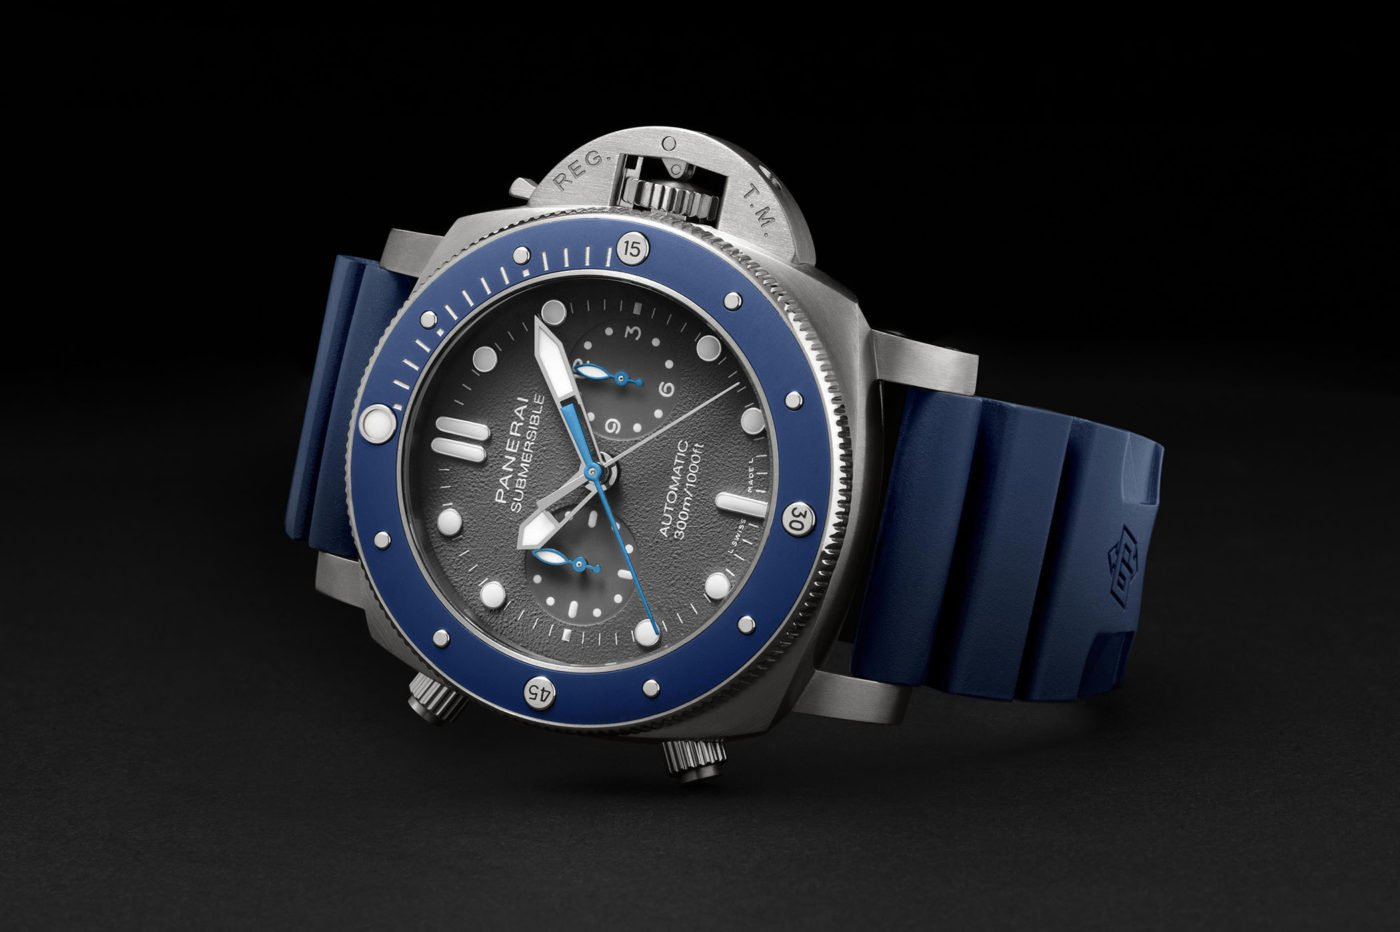 Panerai Submersible Chrono Guillaume Néry Edition PAM00982 – SIHH 2019 [cena]